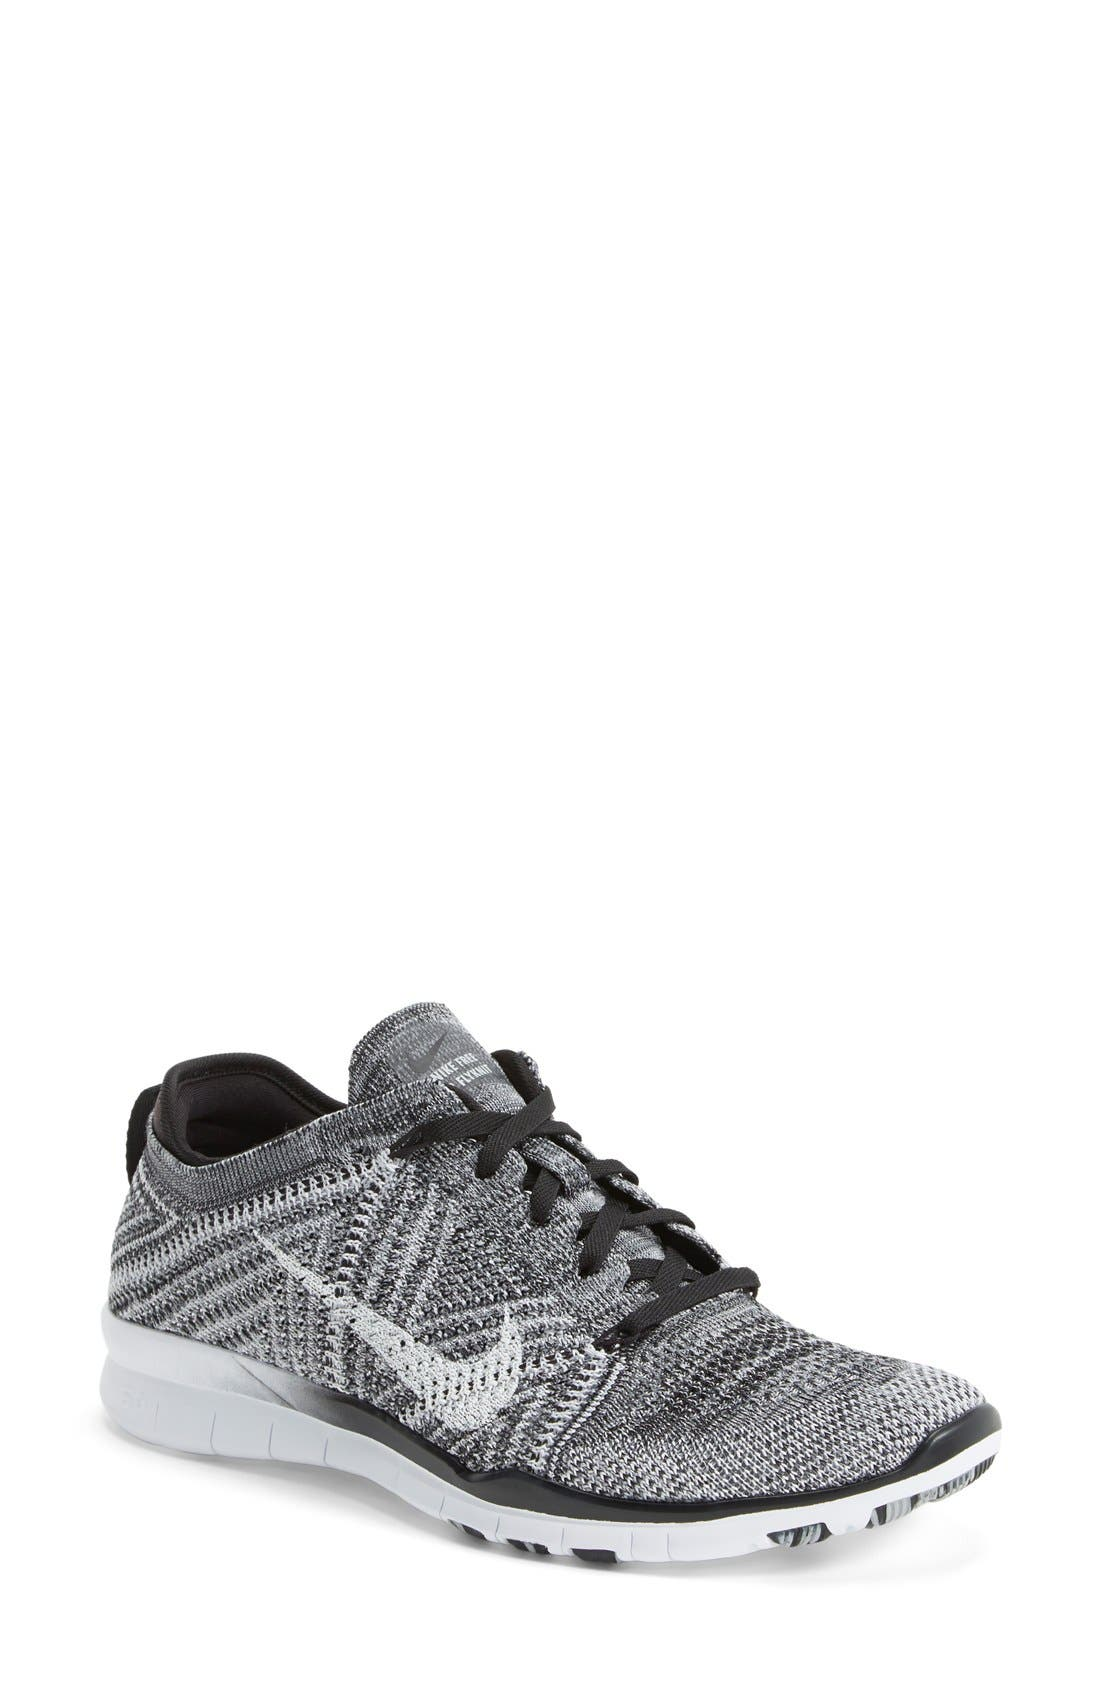 'Free Flyknit 5.0 TR' Training Shoe,                         Main,                         color,